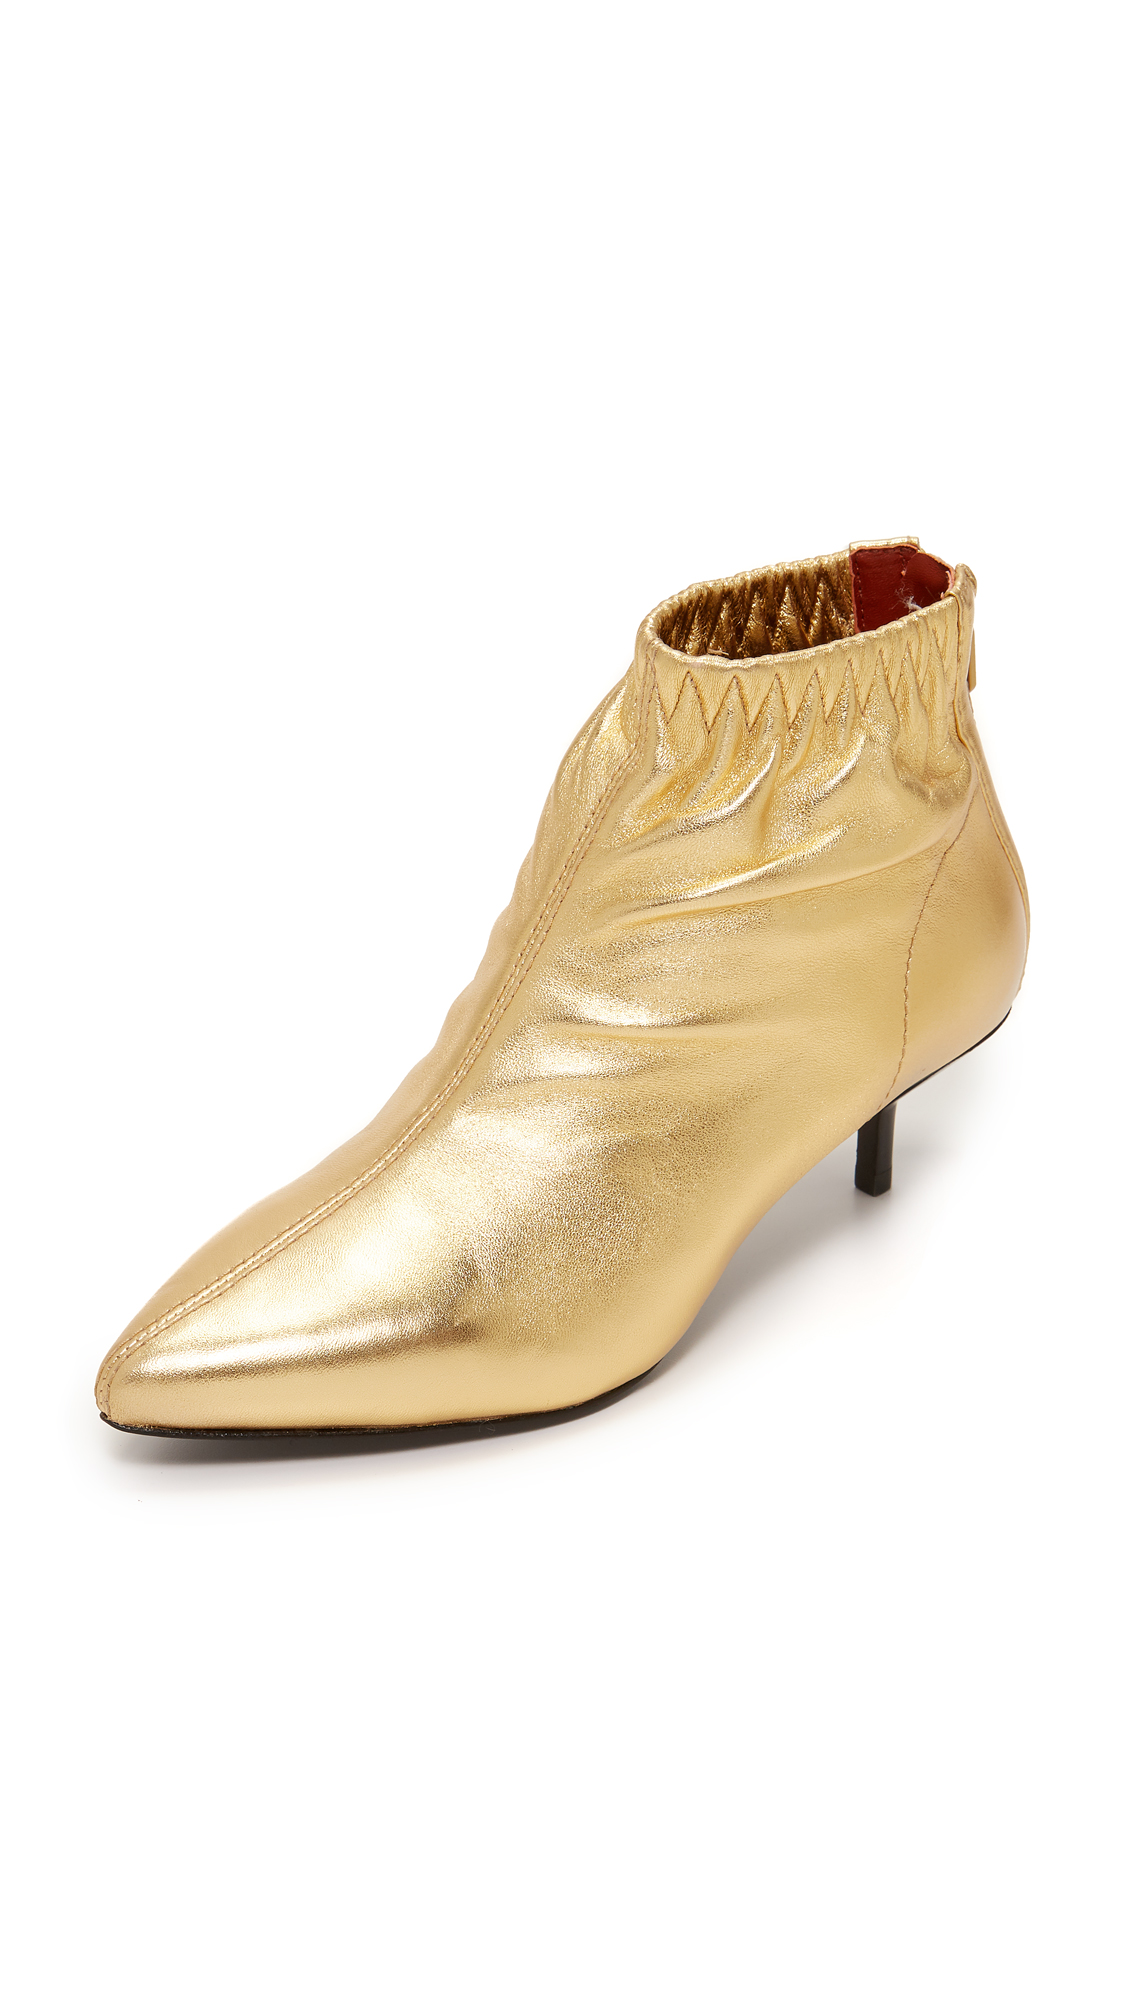 3.1 Phillip Lim Blitz Kitten Heel Booties - Gold